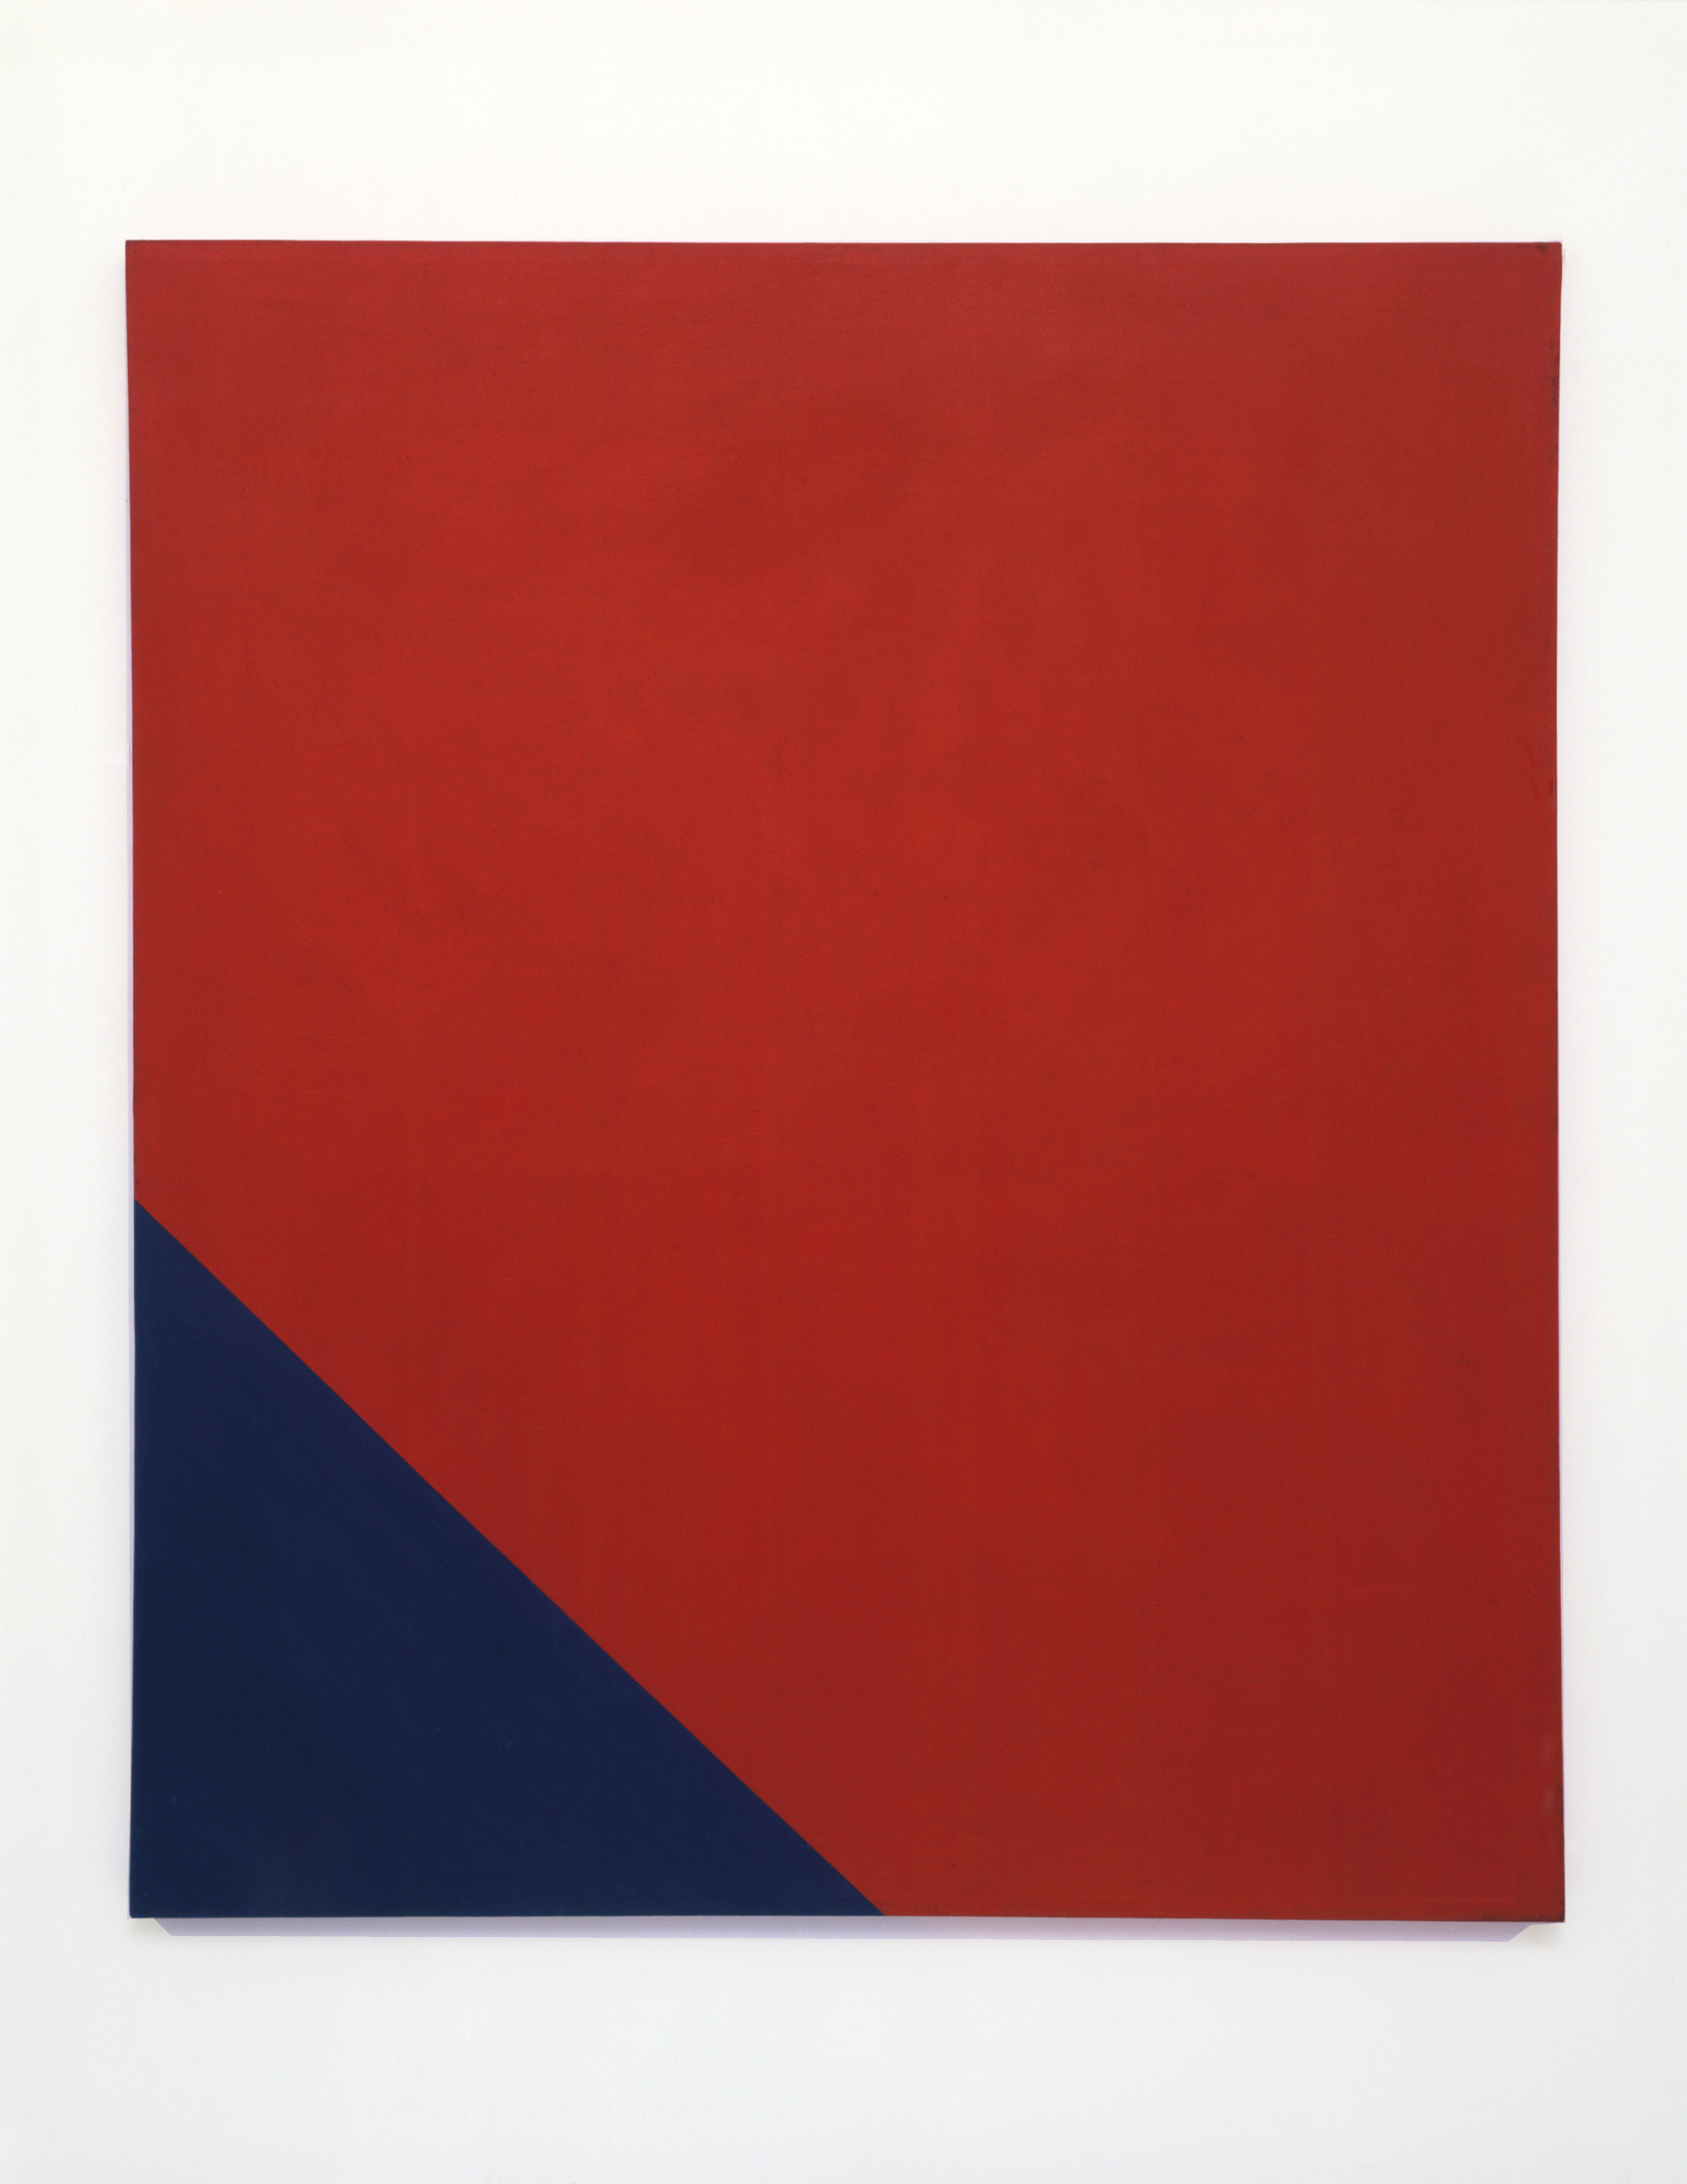 """MARY CORSE UNTITLED (RED – BLUE SERIES), 1964 ACRYLIC ON CANVAS 78"""" X 52"""""""